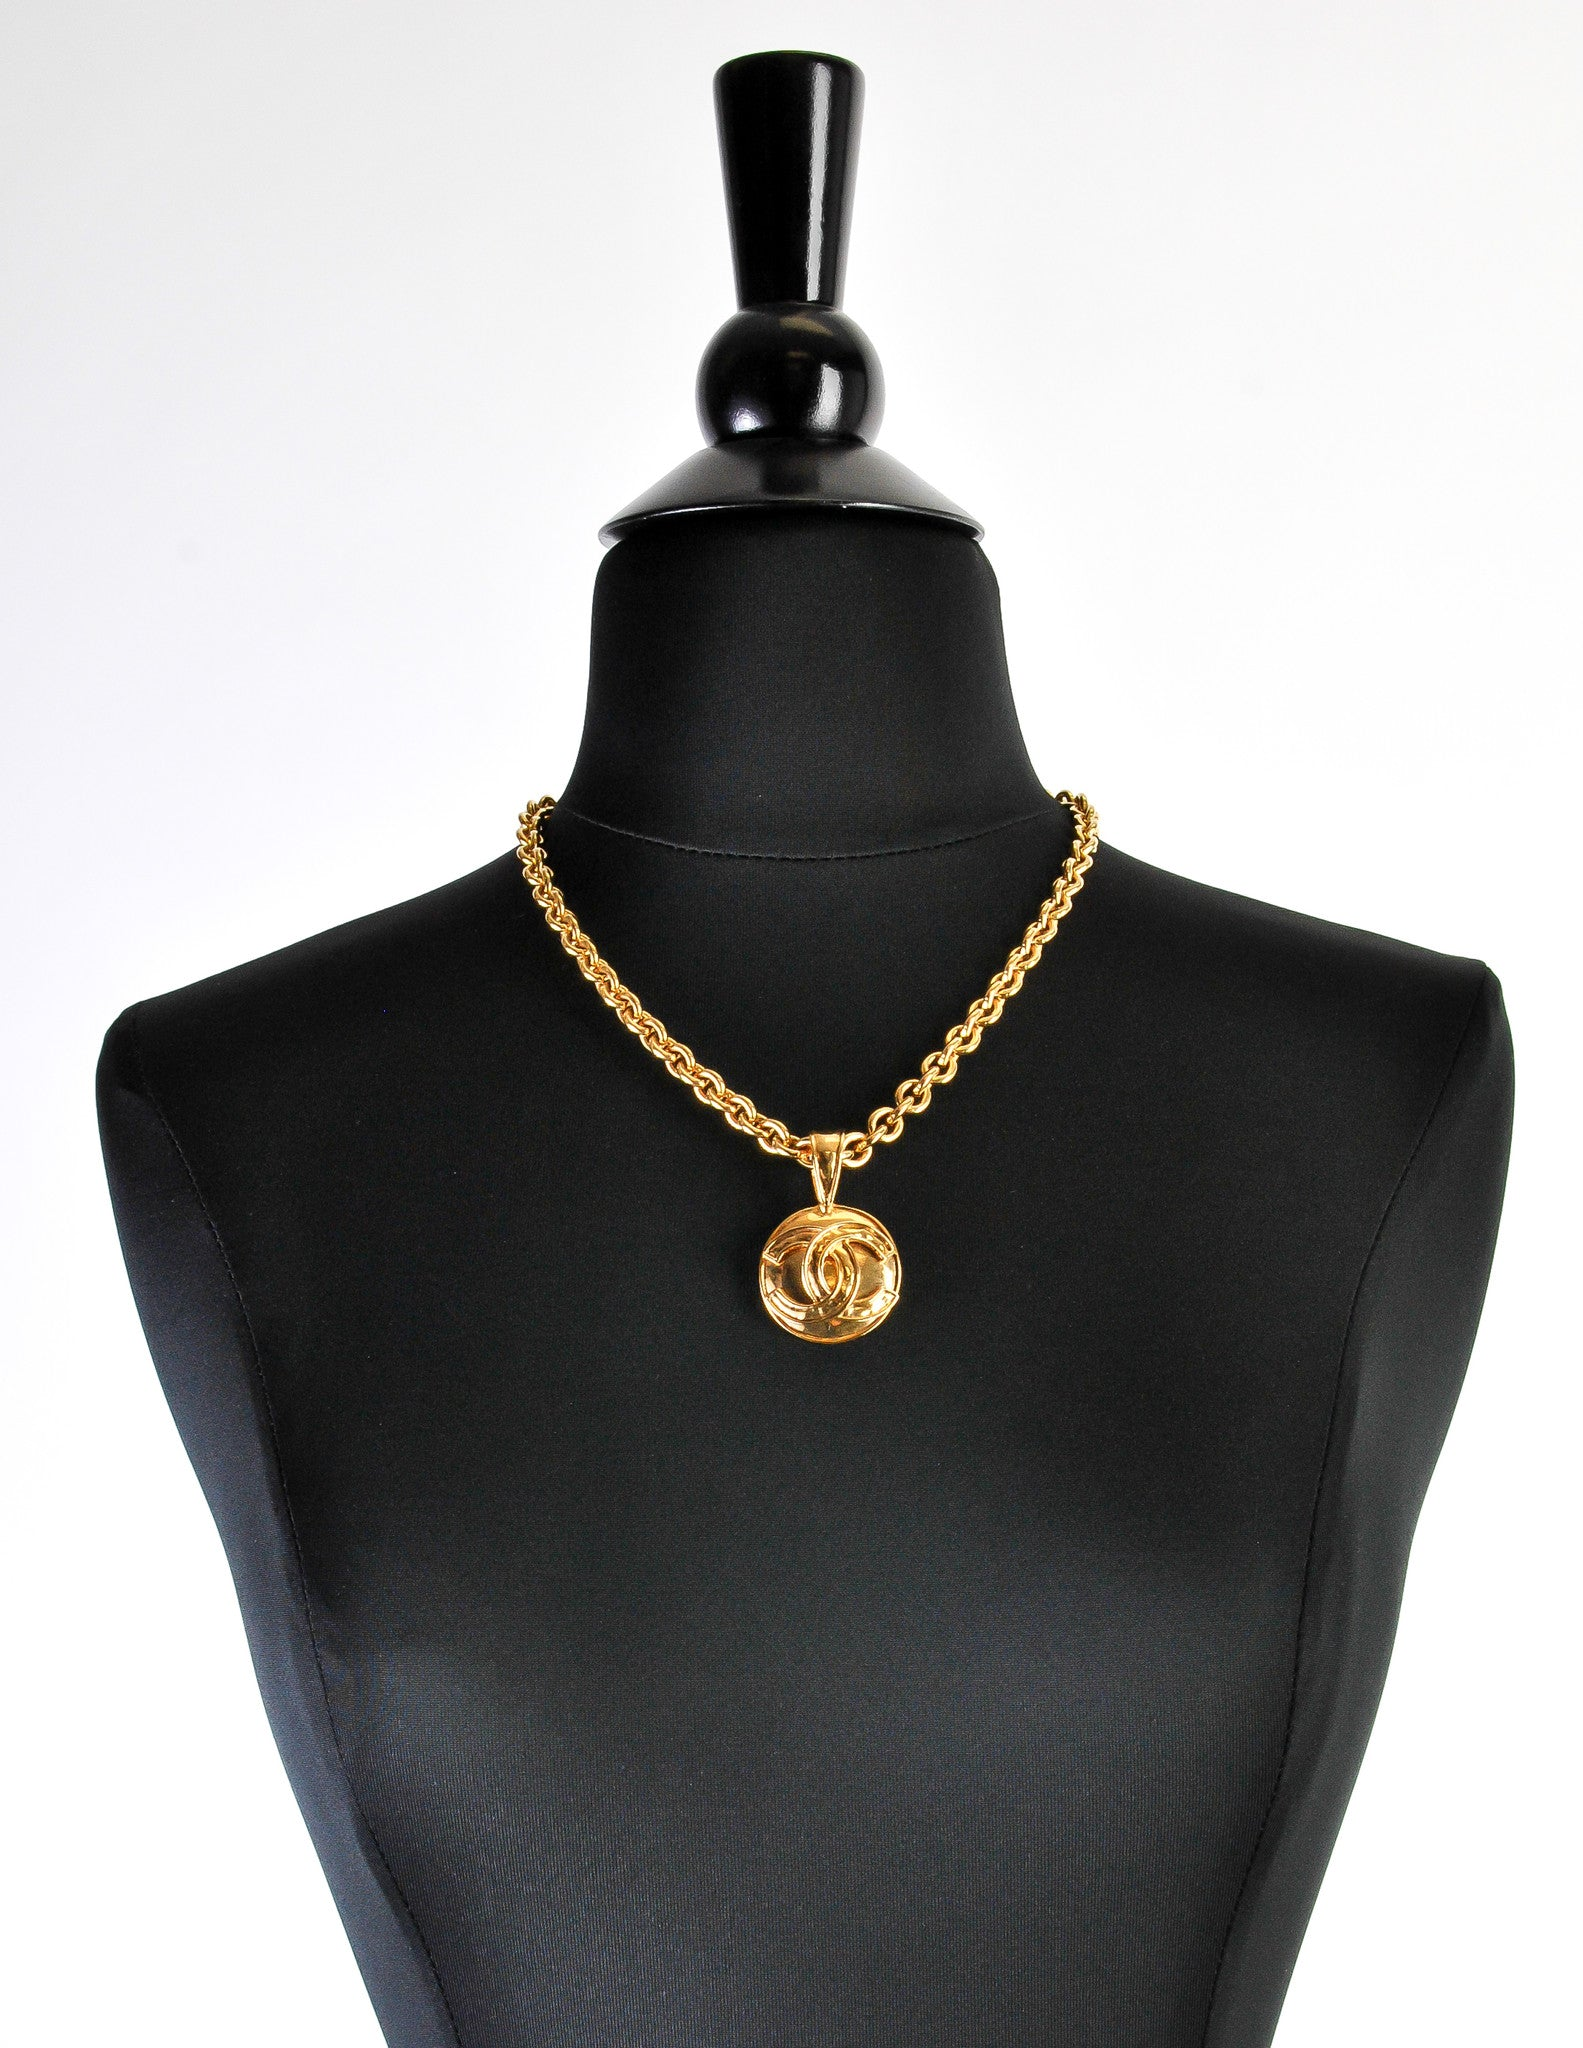 Chanel vintage gold cc logo pendant necklace from amarcord vintage chanel vintage gold cc logo pendant necklace amarcord vintage fashion 3 aloadofball Image collections